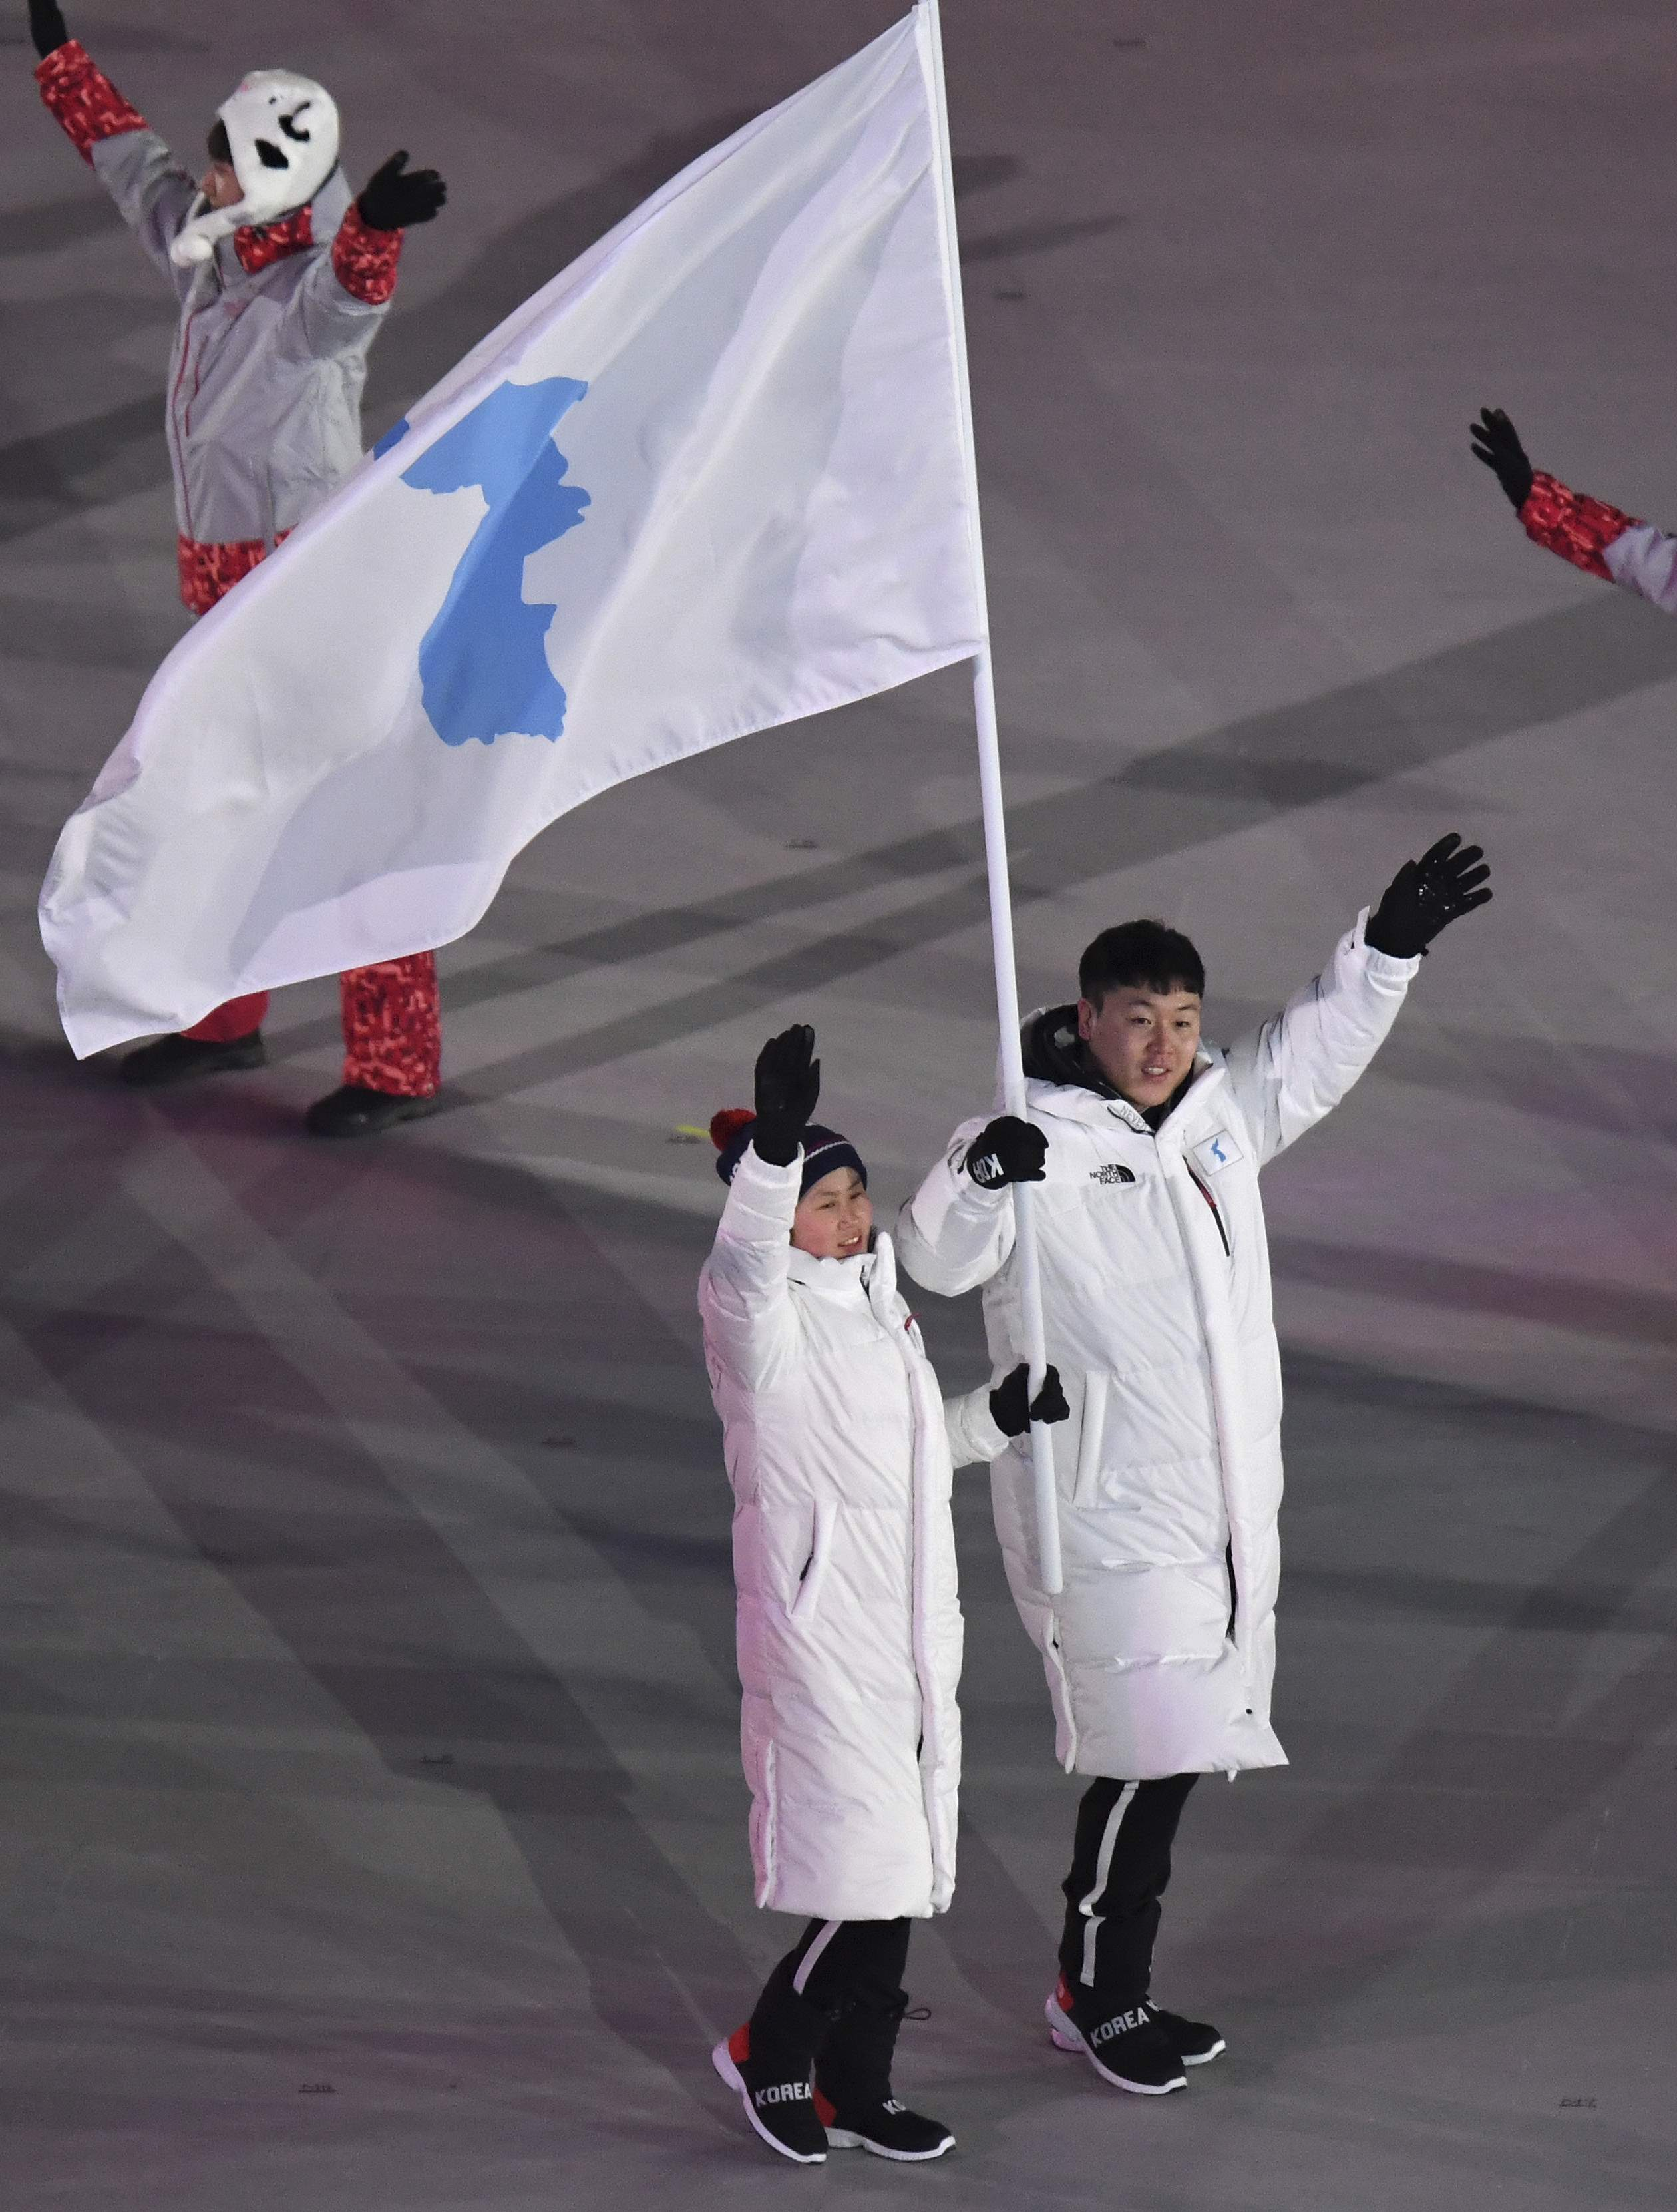 North Korea's Hwang Chung Gum and South Korea's Won Yun-jong arrive during the opening ceremony of the 2018 Winter Olympics in Pyeongchang, South Korea, Friday, Feb. 9, 2018. (Franck Fife/Pool Photo via AP)